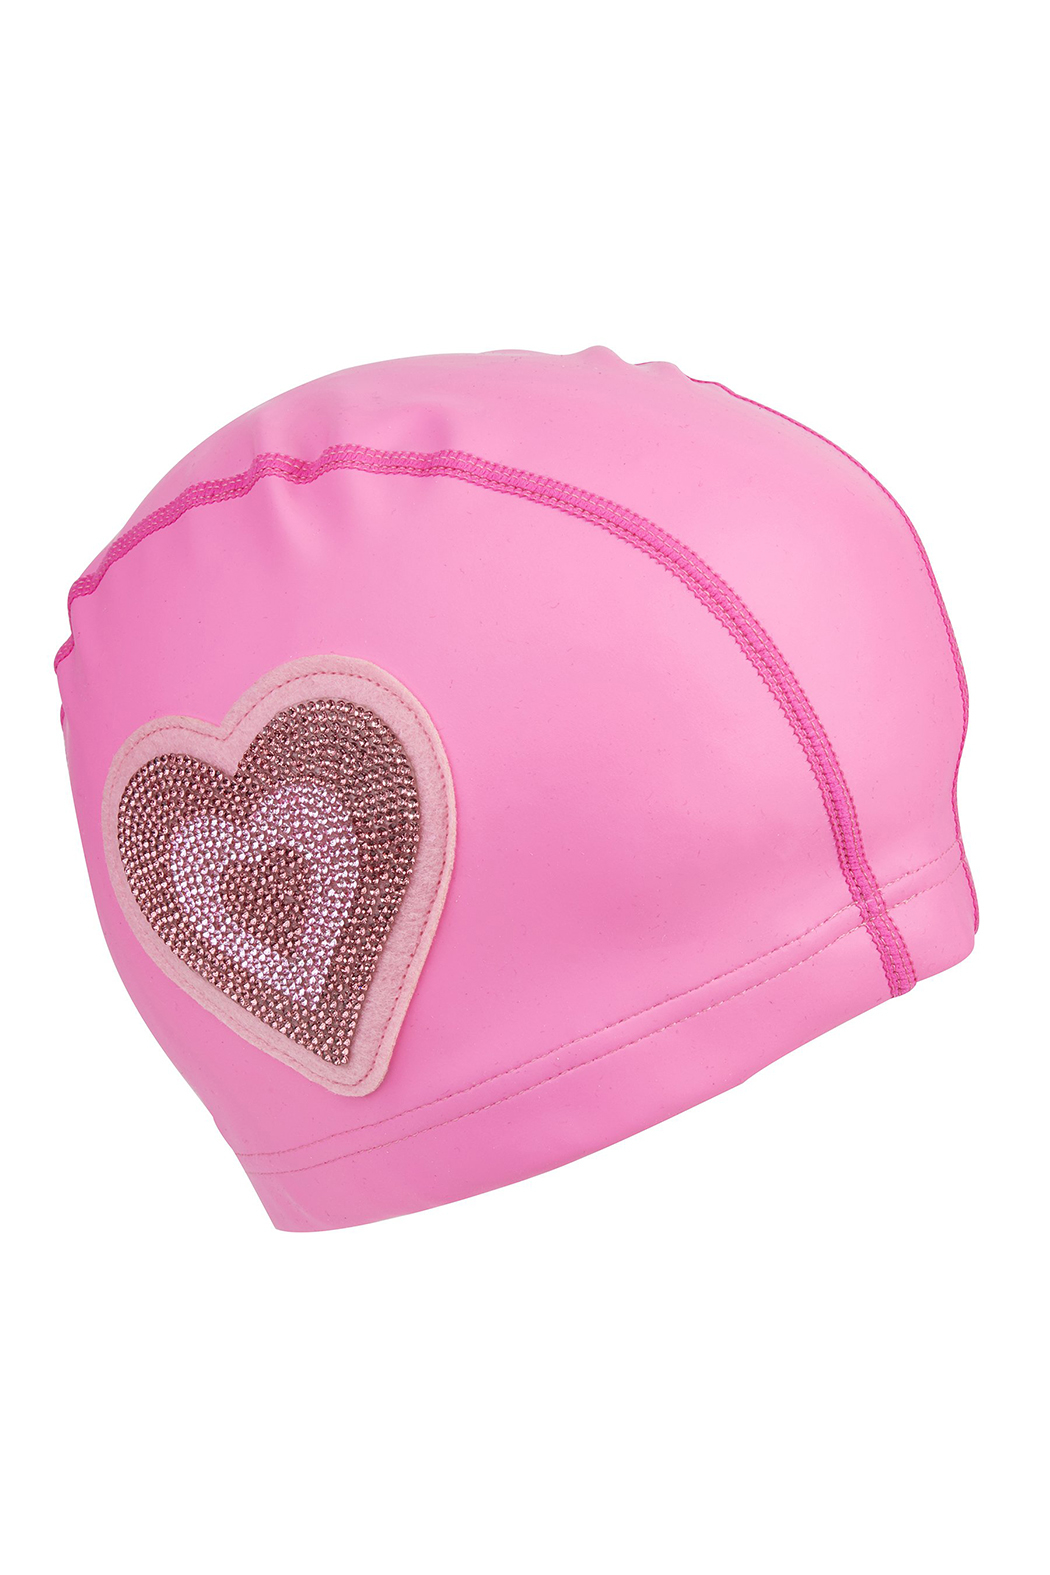 Bling2o Neon Heart Swim Cap - Main Image